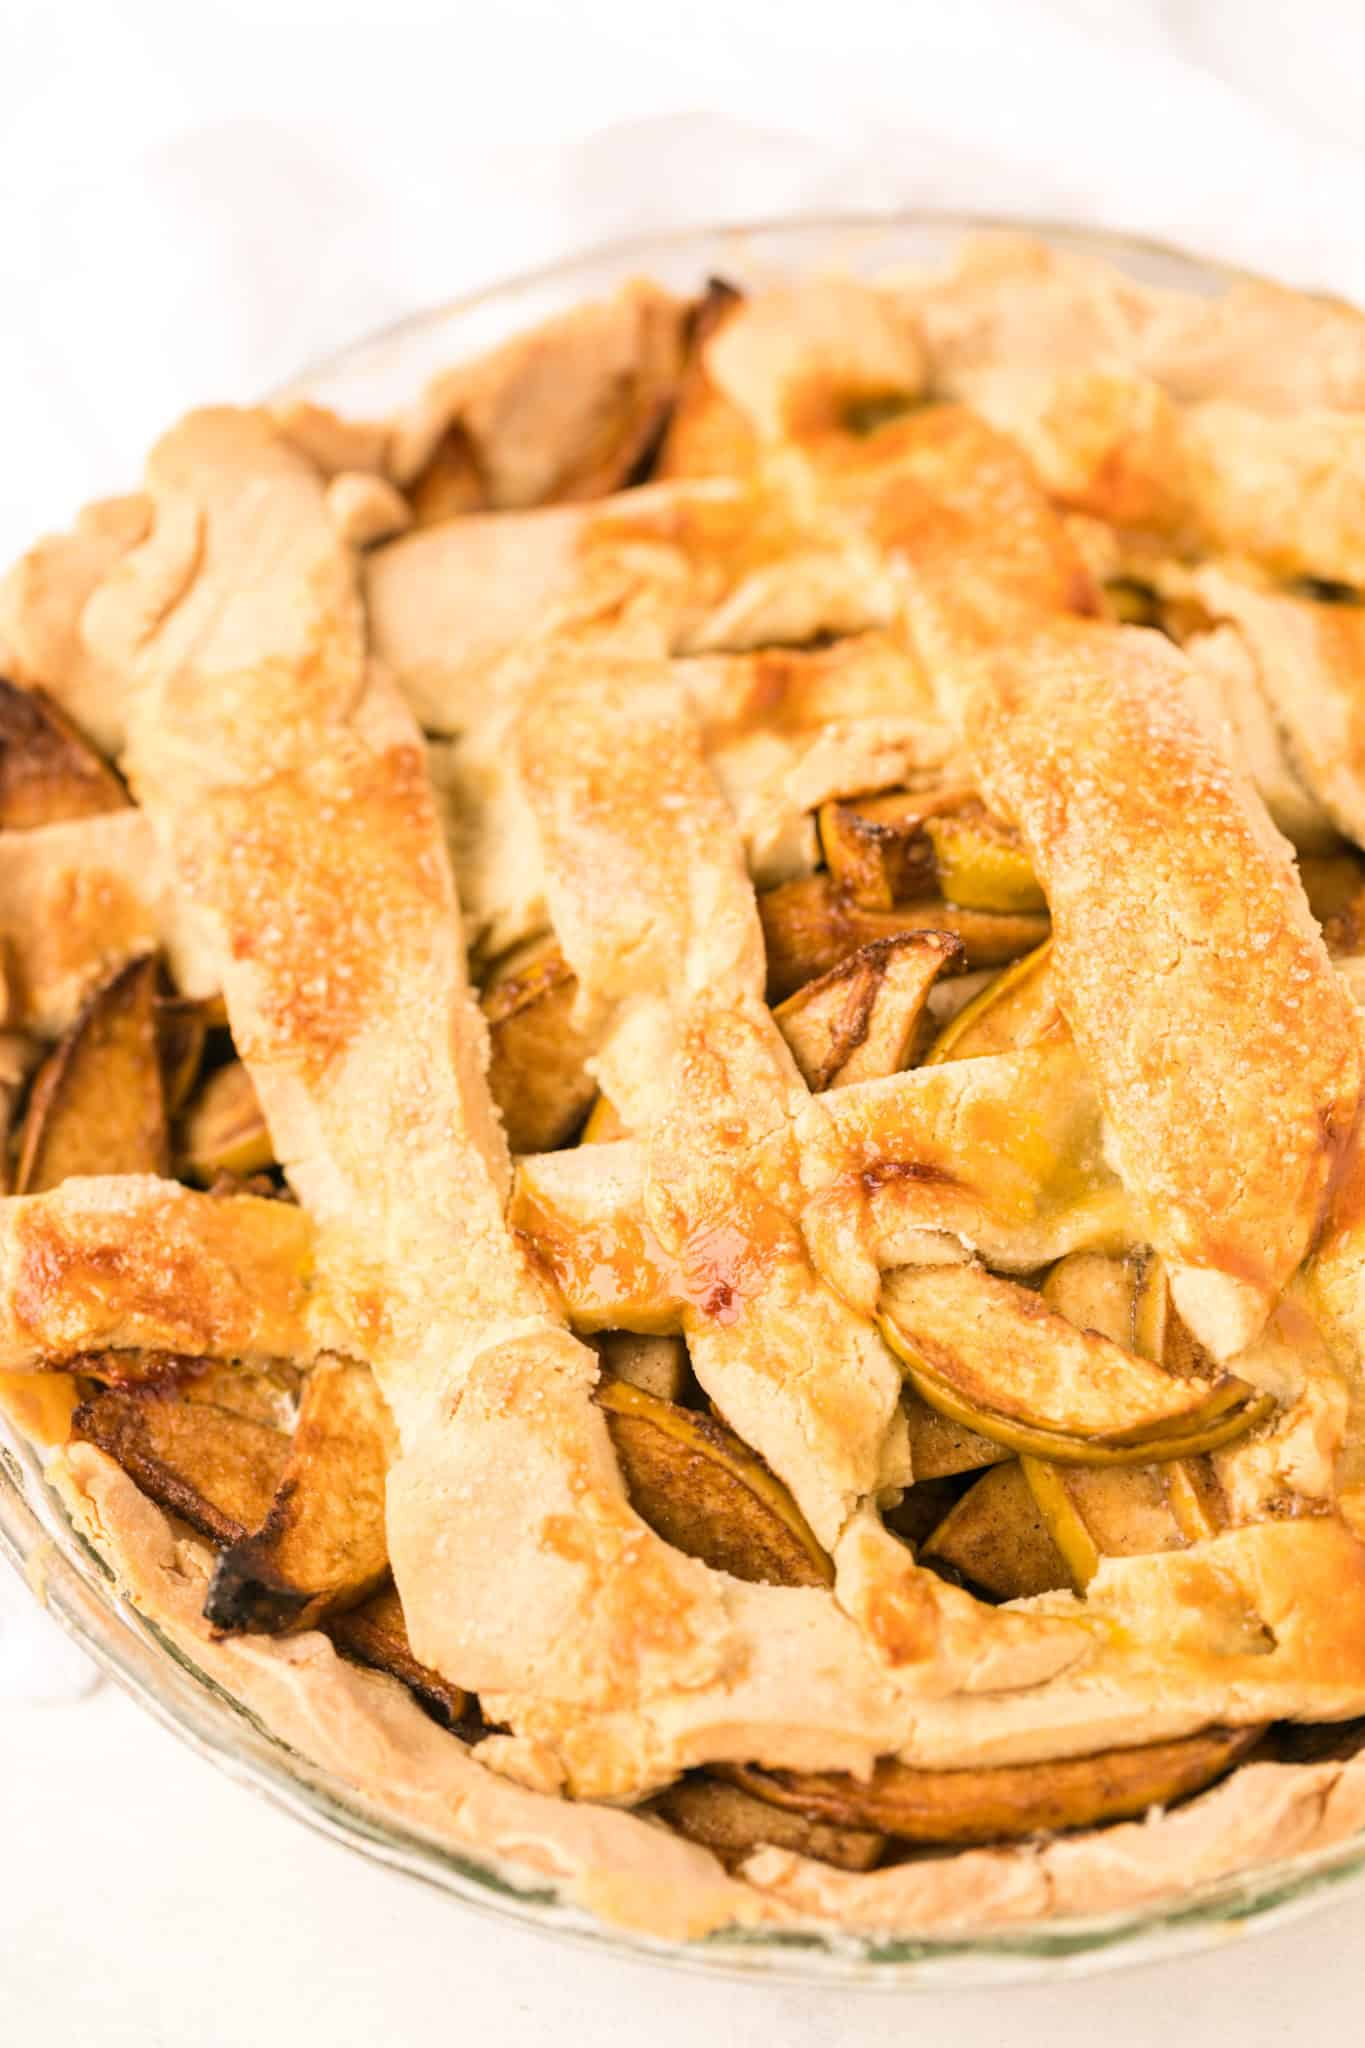 gluten-free apple pie freshly baked from the oven